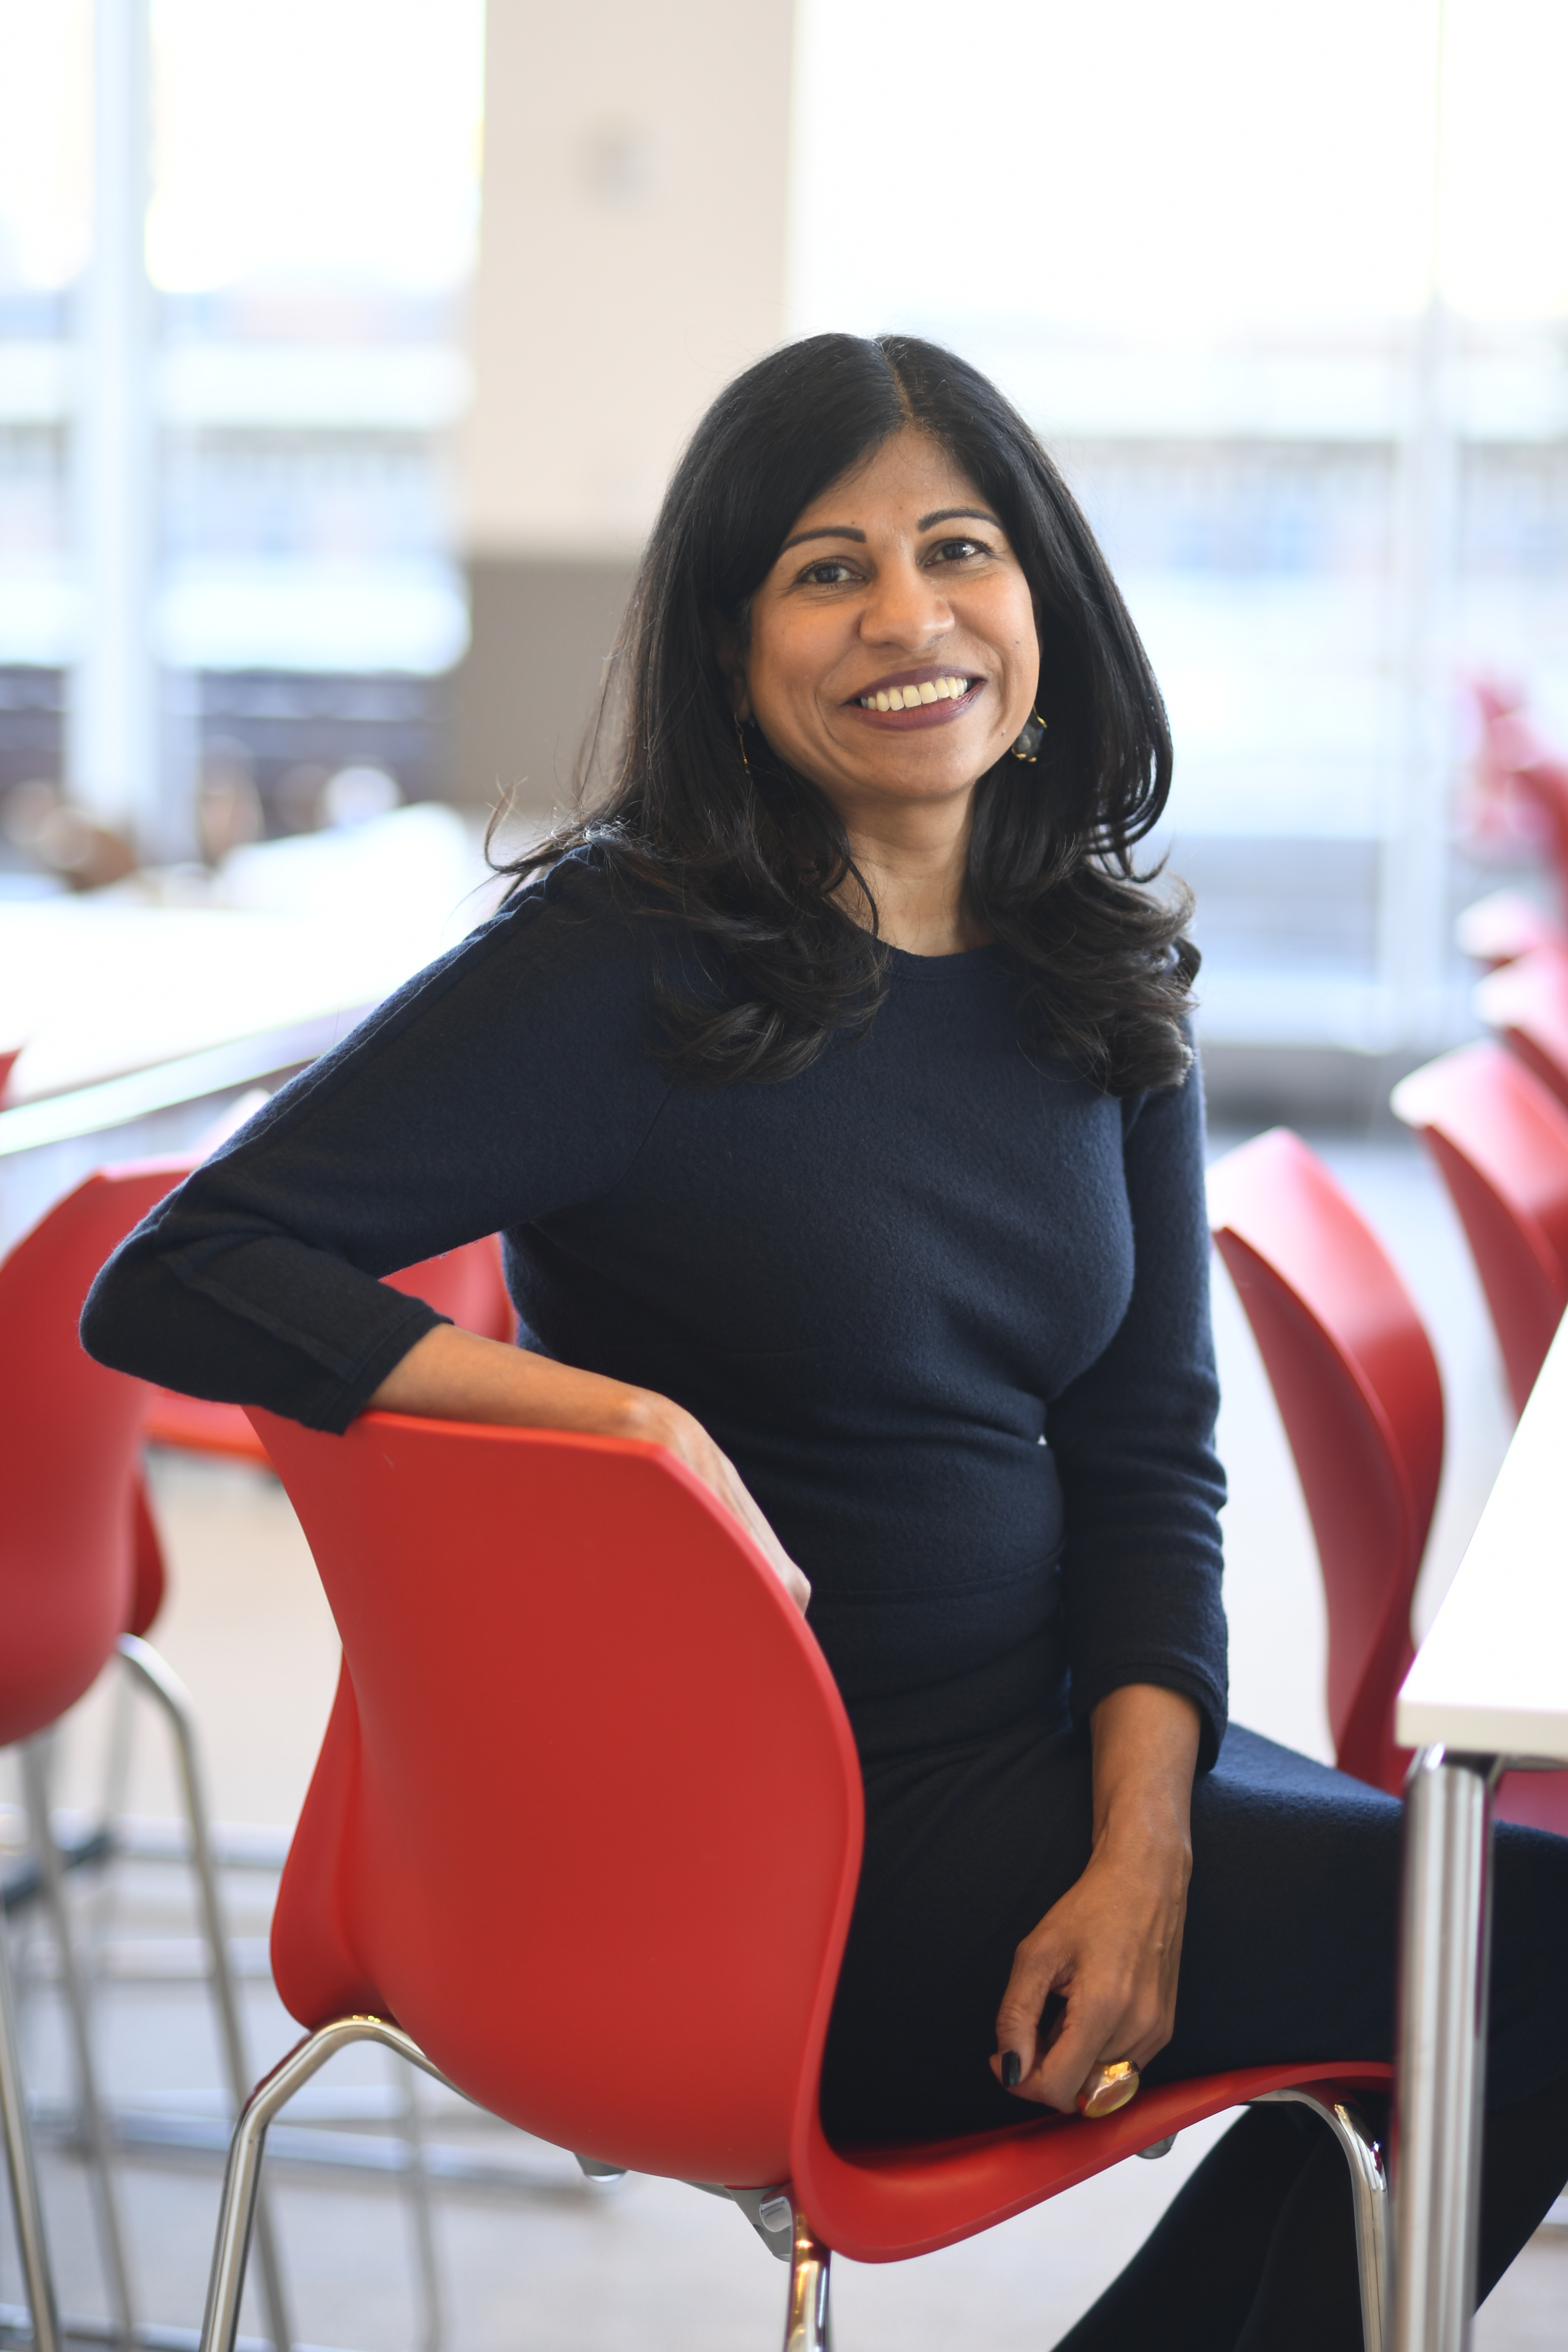 Lata N. Reddy, head of Corporate Social Responsibility, and chair and president of The Prudential Foundation. Follow her on Twitter: @latareddy (Photo: Business Wire)